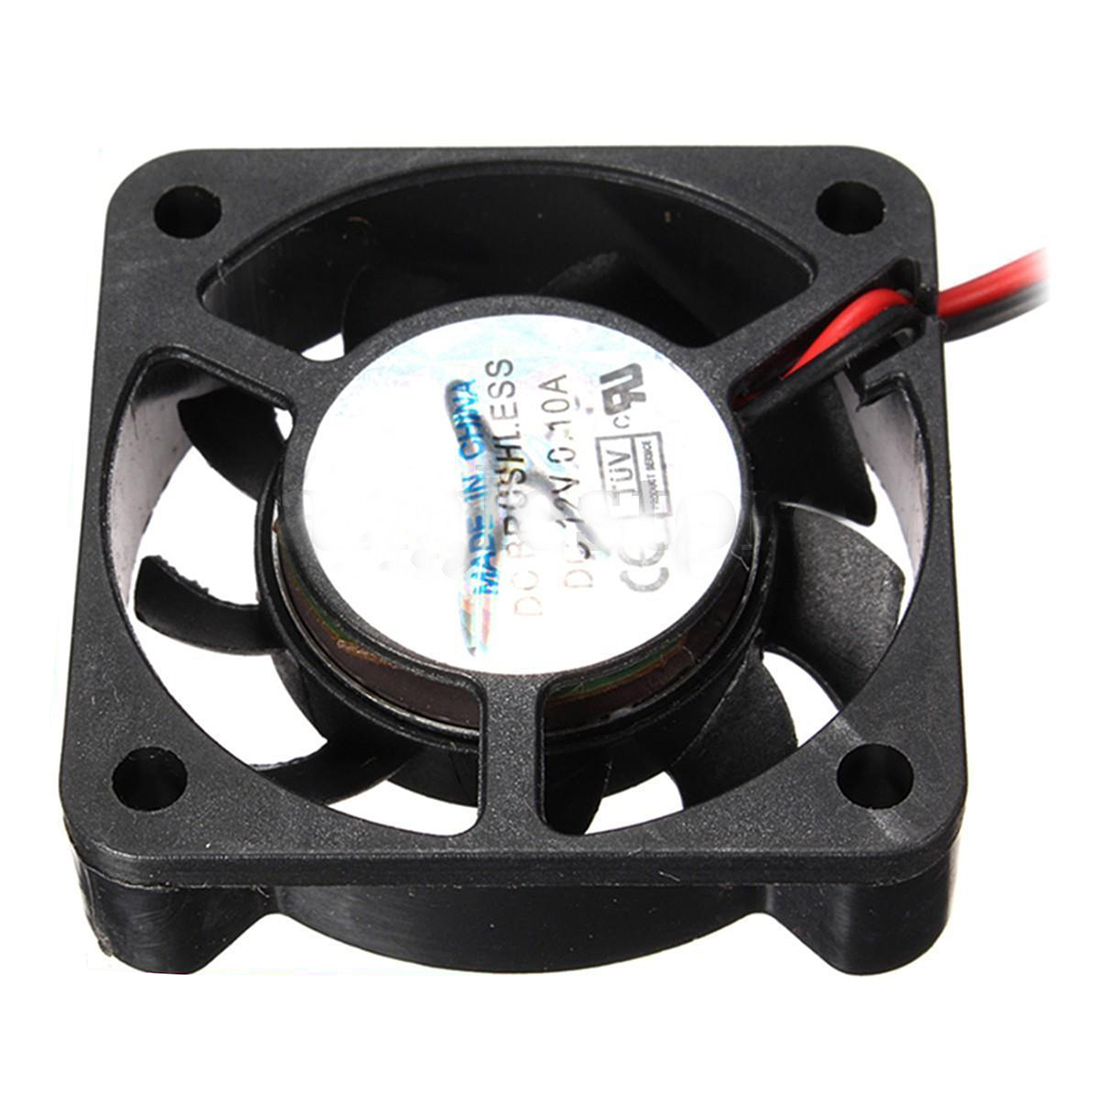 4 Pin 12V 40mm PC Computer CPU Cooling Cooler Fan Heatsinks Radiator 40x40x10mm 12v 2 pin 55mm graphics cards cooler fan laptop cpu cooling fan cooler radiator for pc computer notebook aluminum gold heatsink